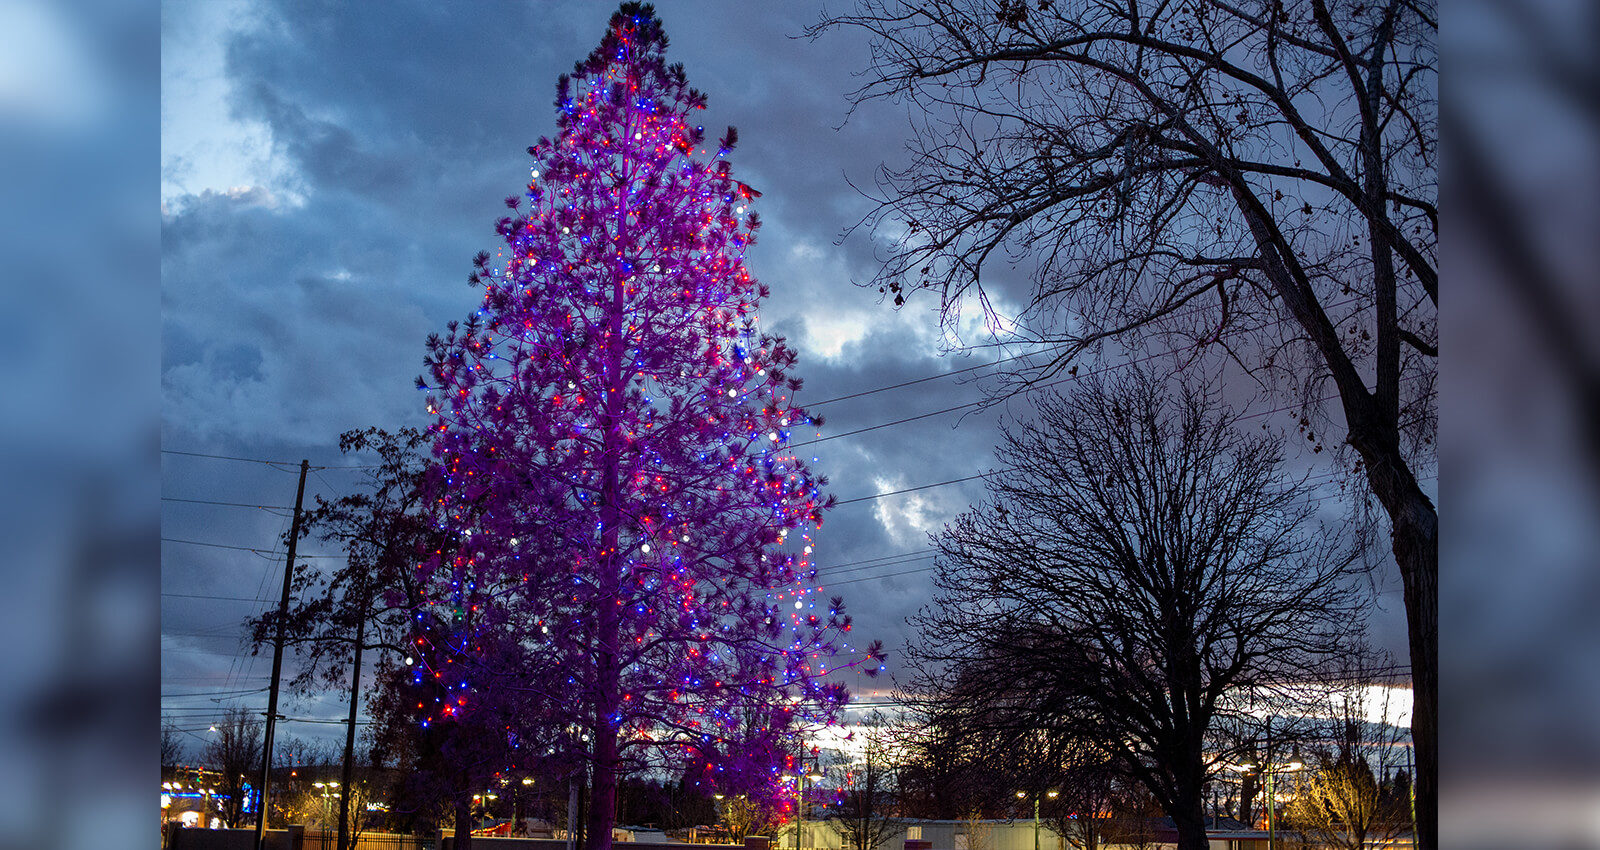 Veterans' Christmas Tree at night with lights glowing.